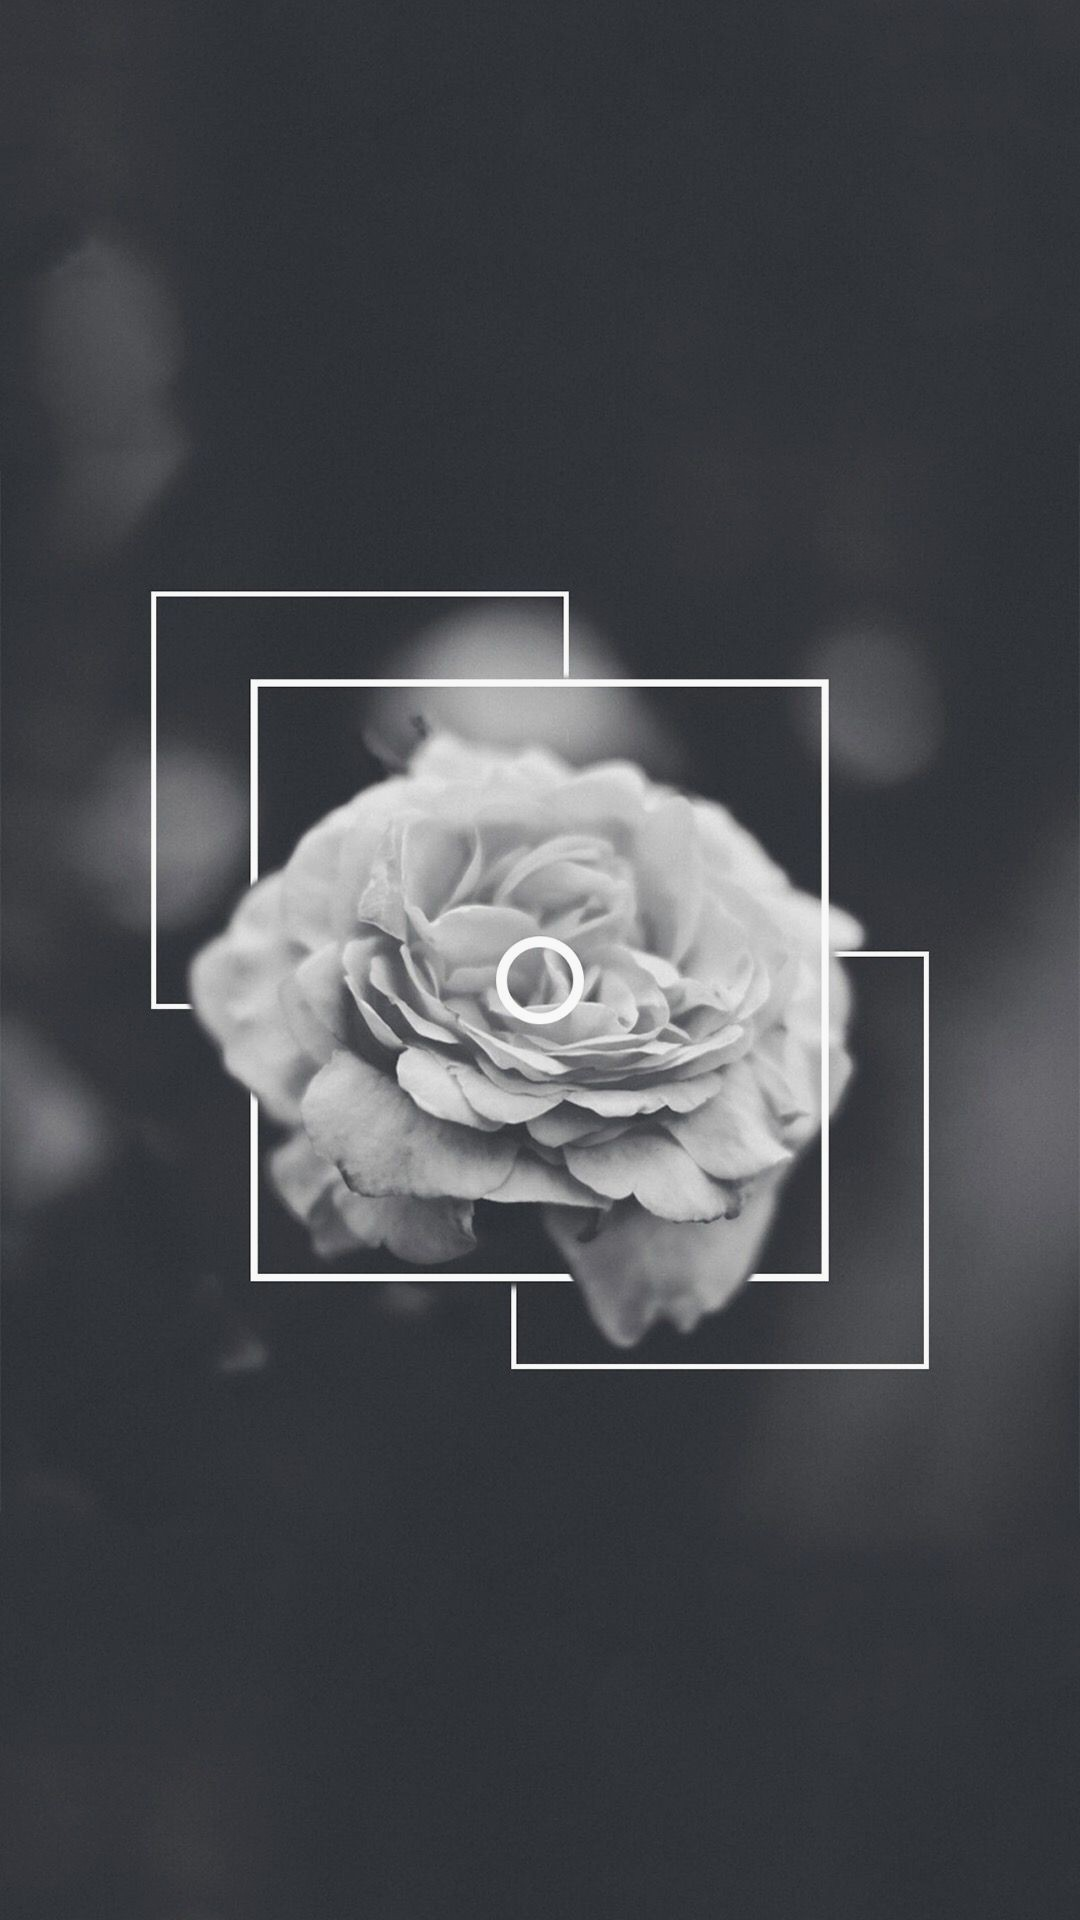 67 670758 black and white rose aesthetic